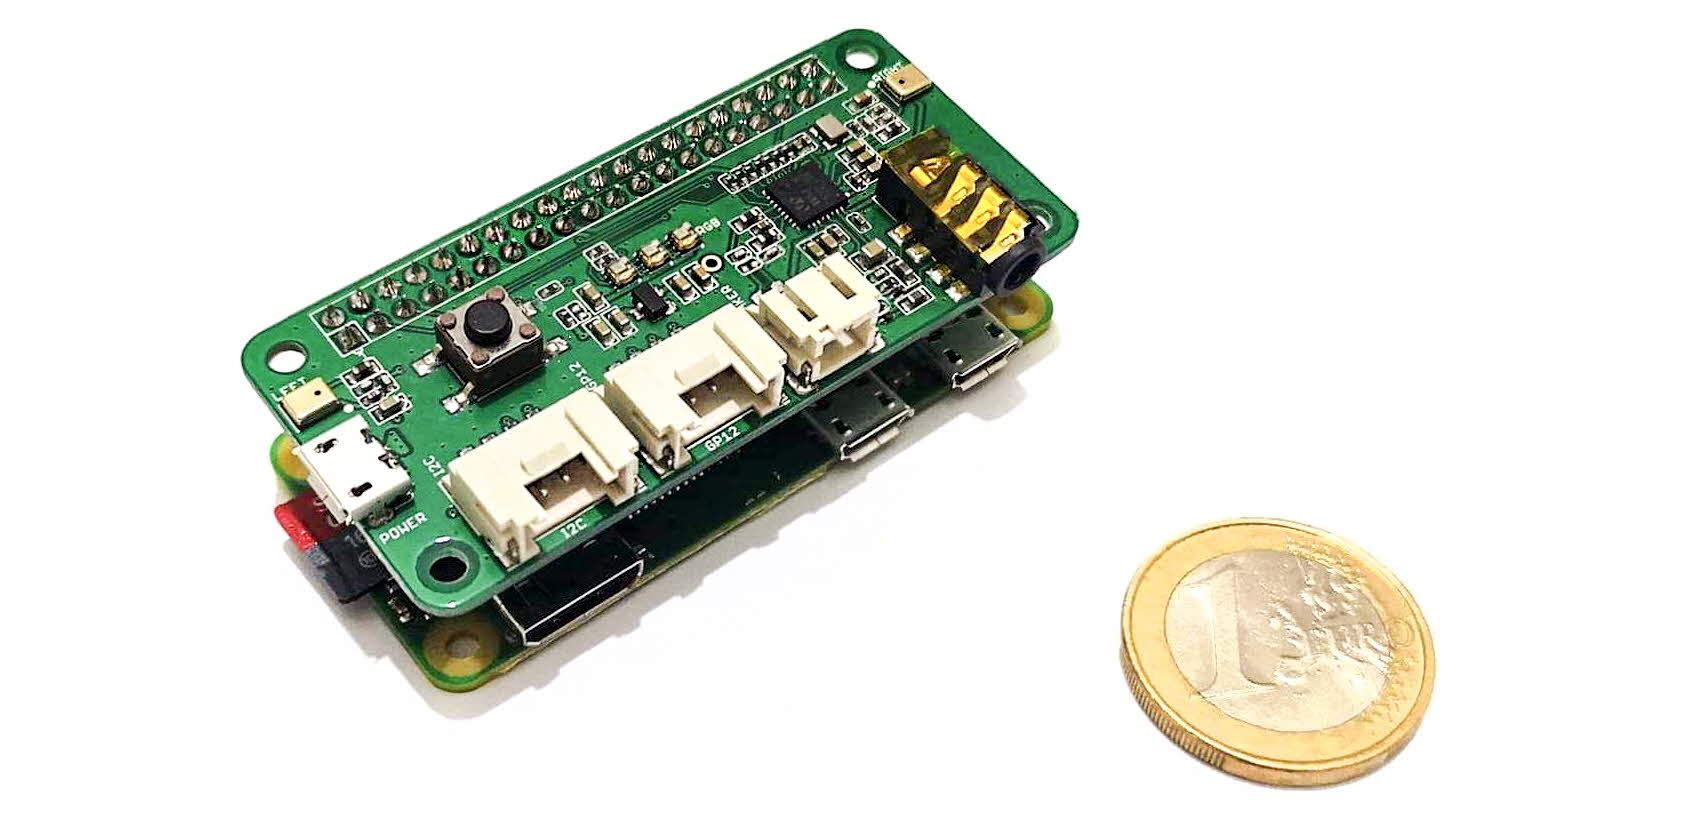 The Raspberry Pi unit and a 1 Euro coin